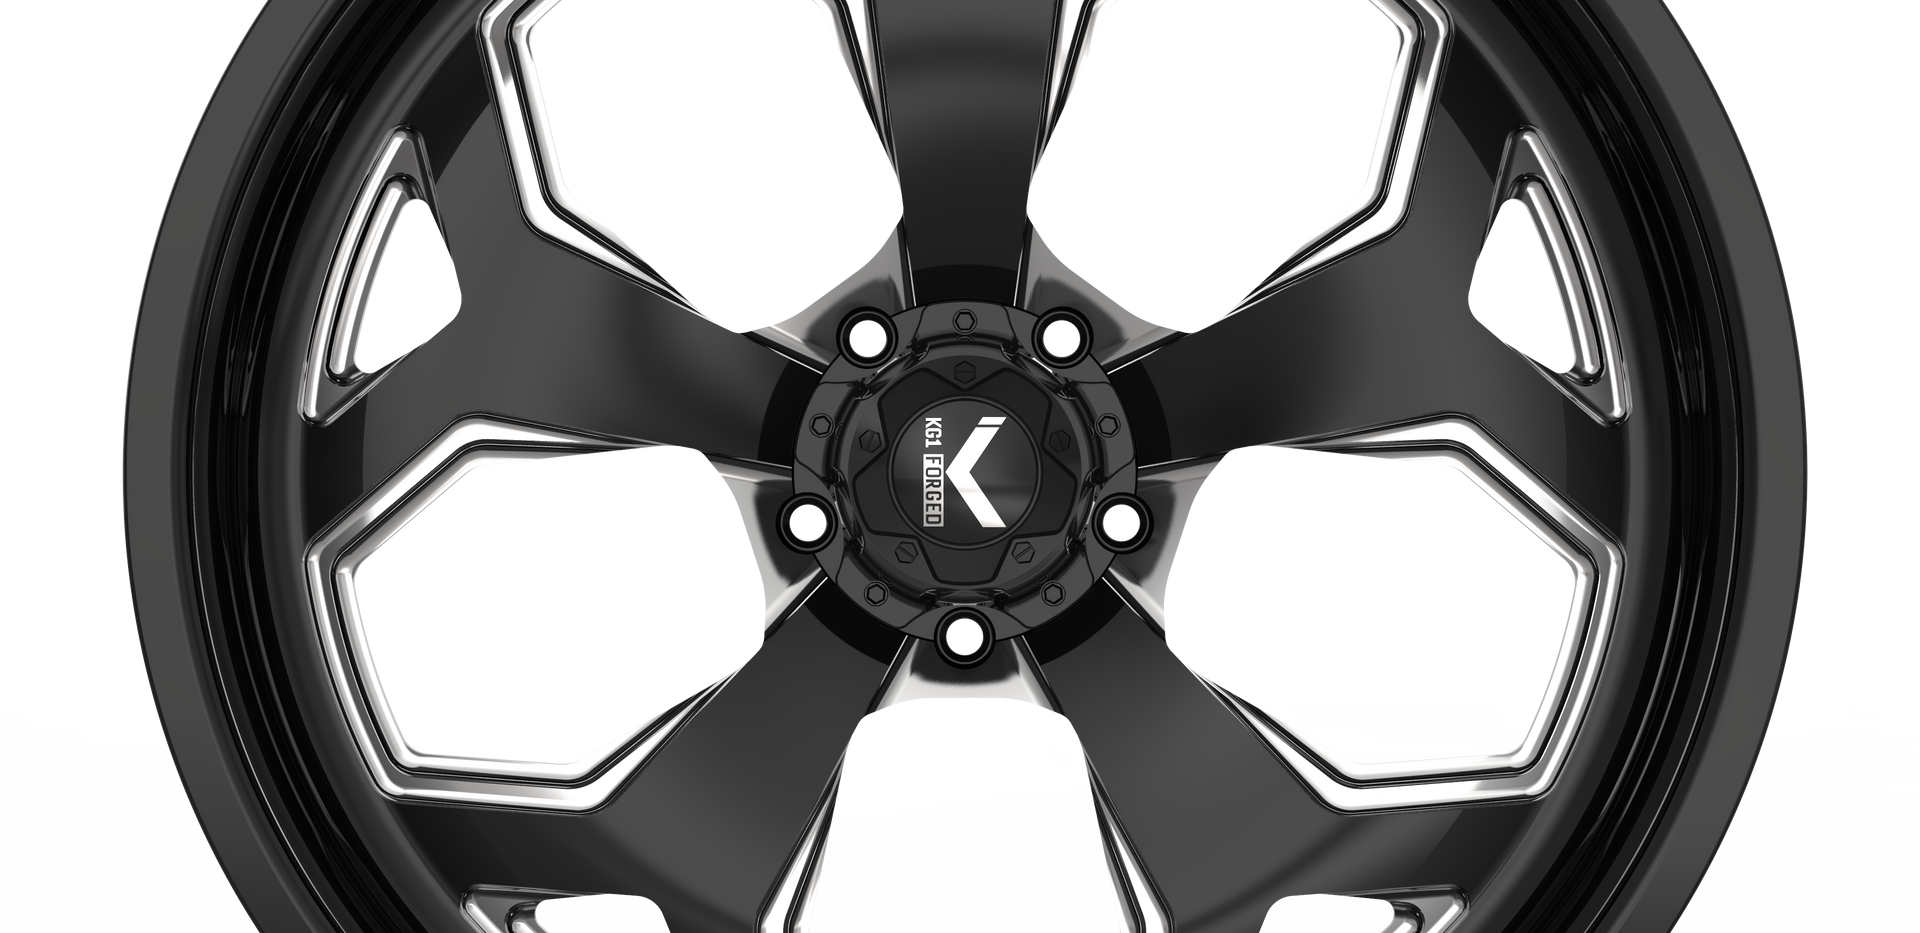 KNOX KF008-5H- Black Machining-1.